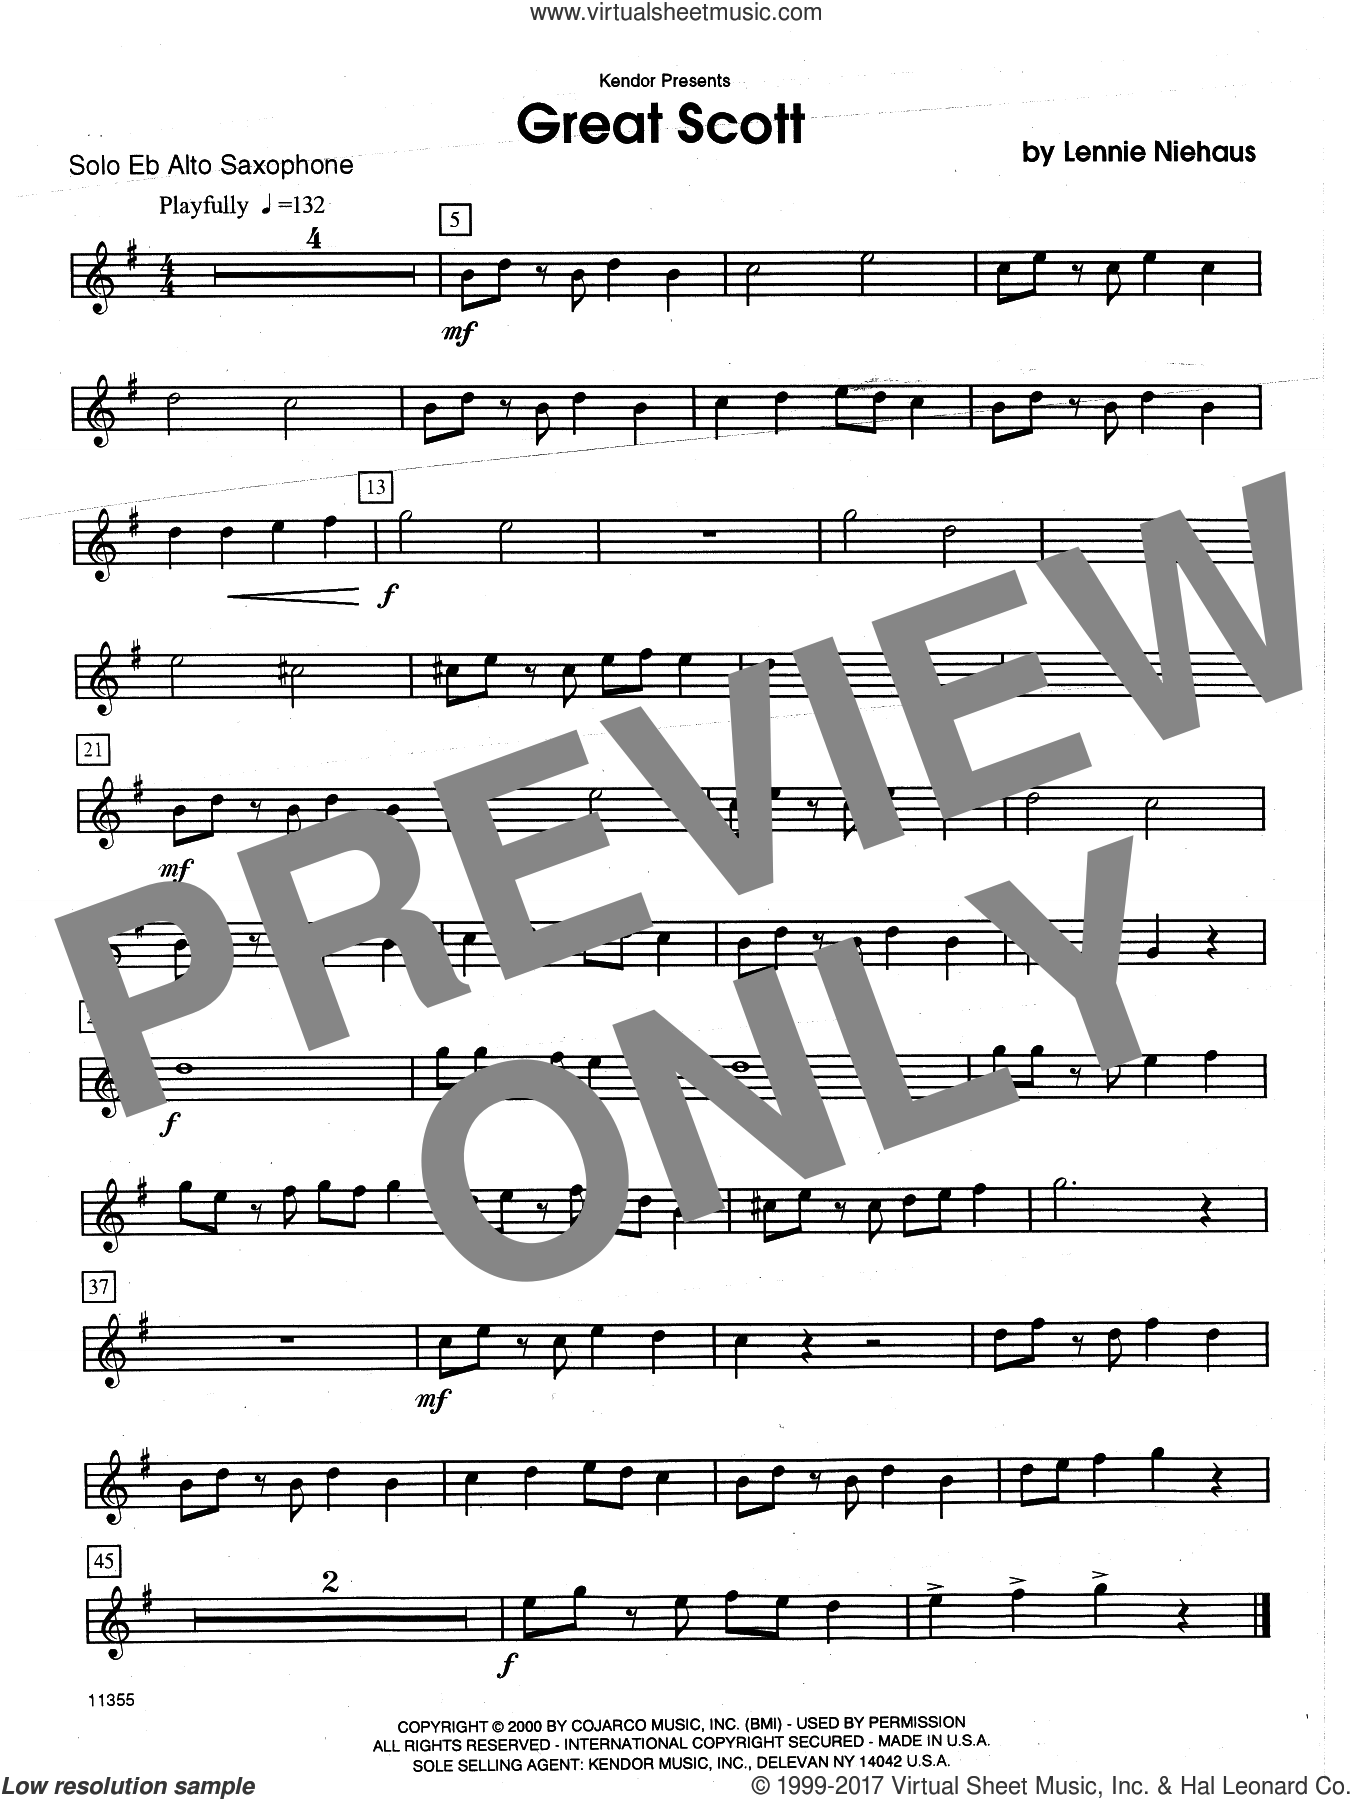 Great Scott (complete set of parts) sheet music for alto saxophone and piano by Lennie Niehaus, intermediate skill level